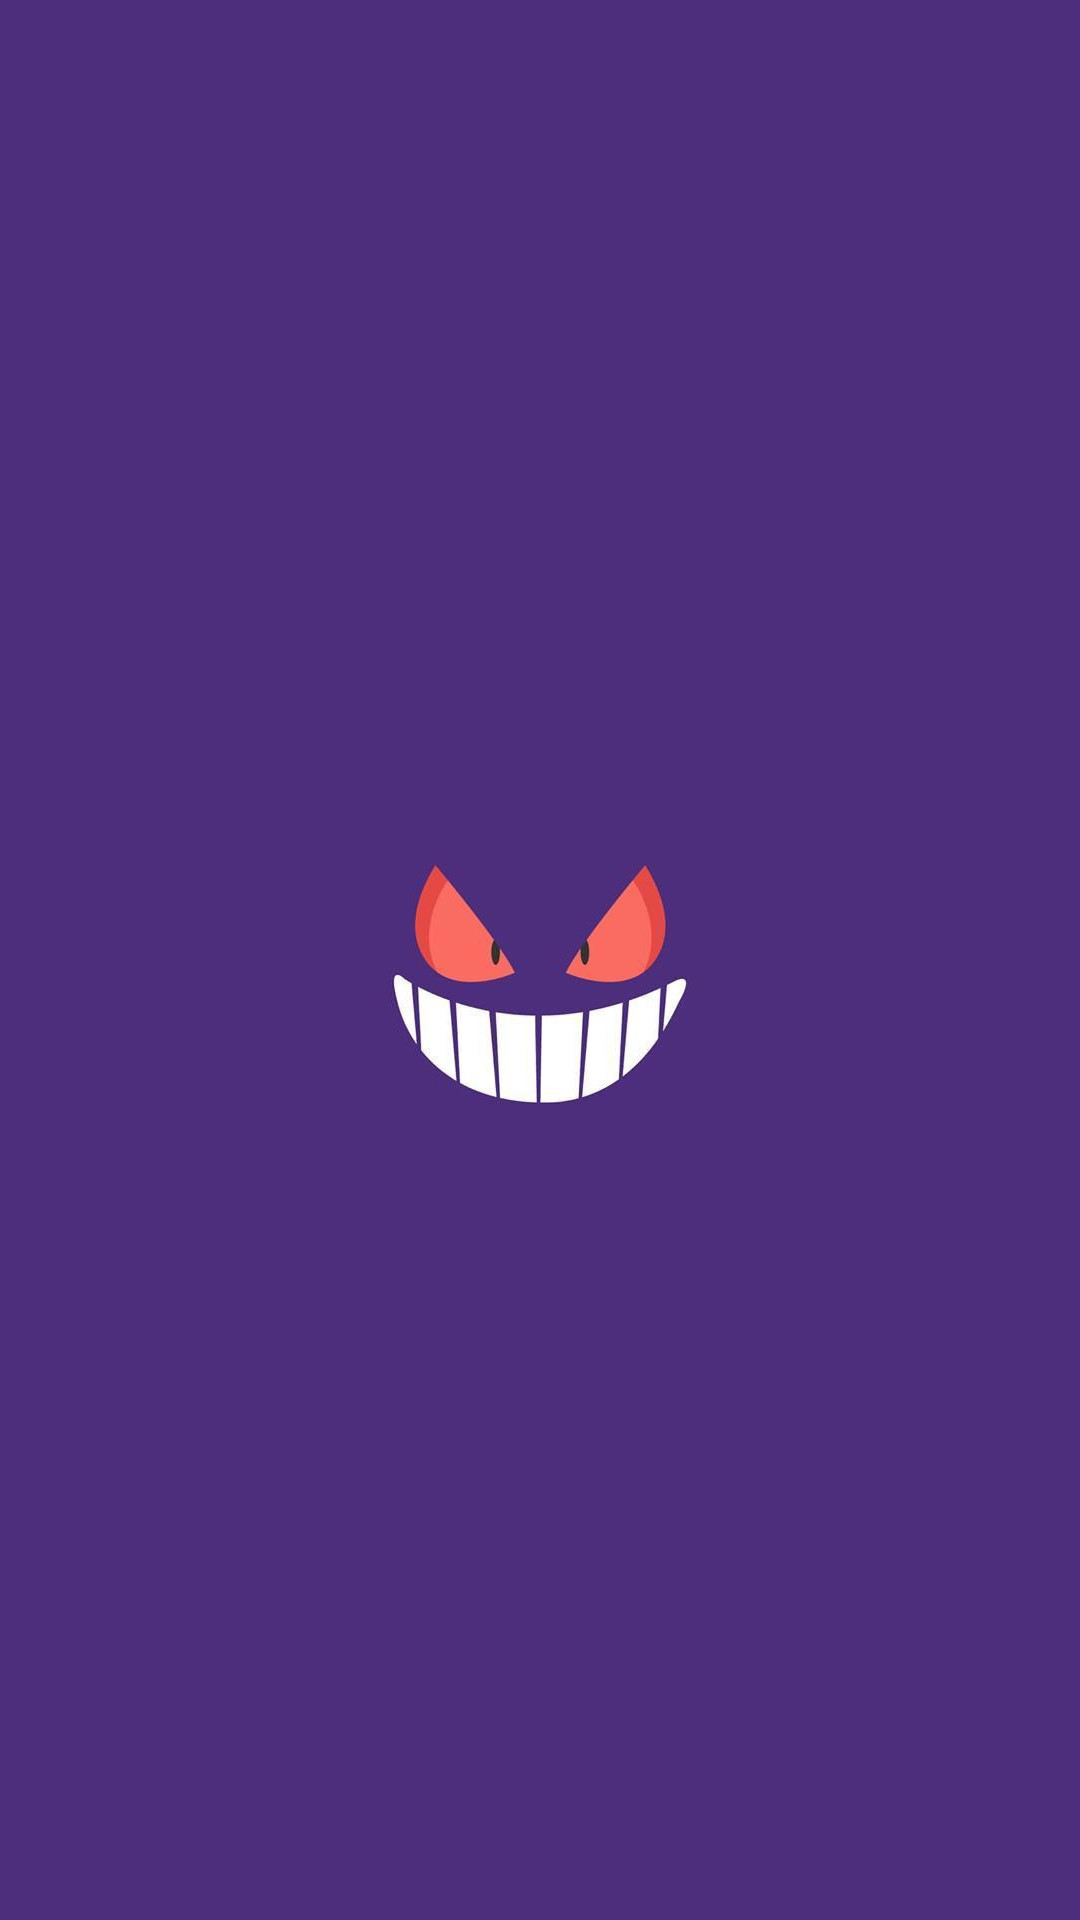 1080x1920 Gengar Pokemon Character iPhone 6+ HD Wallpaper - http://freebestpicture.com